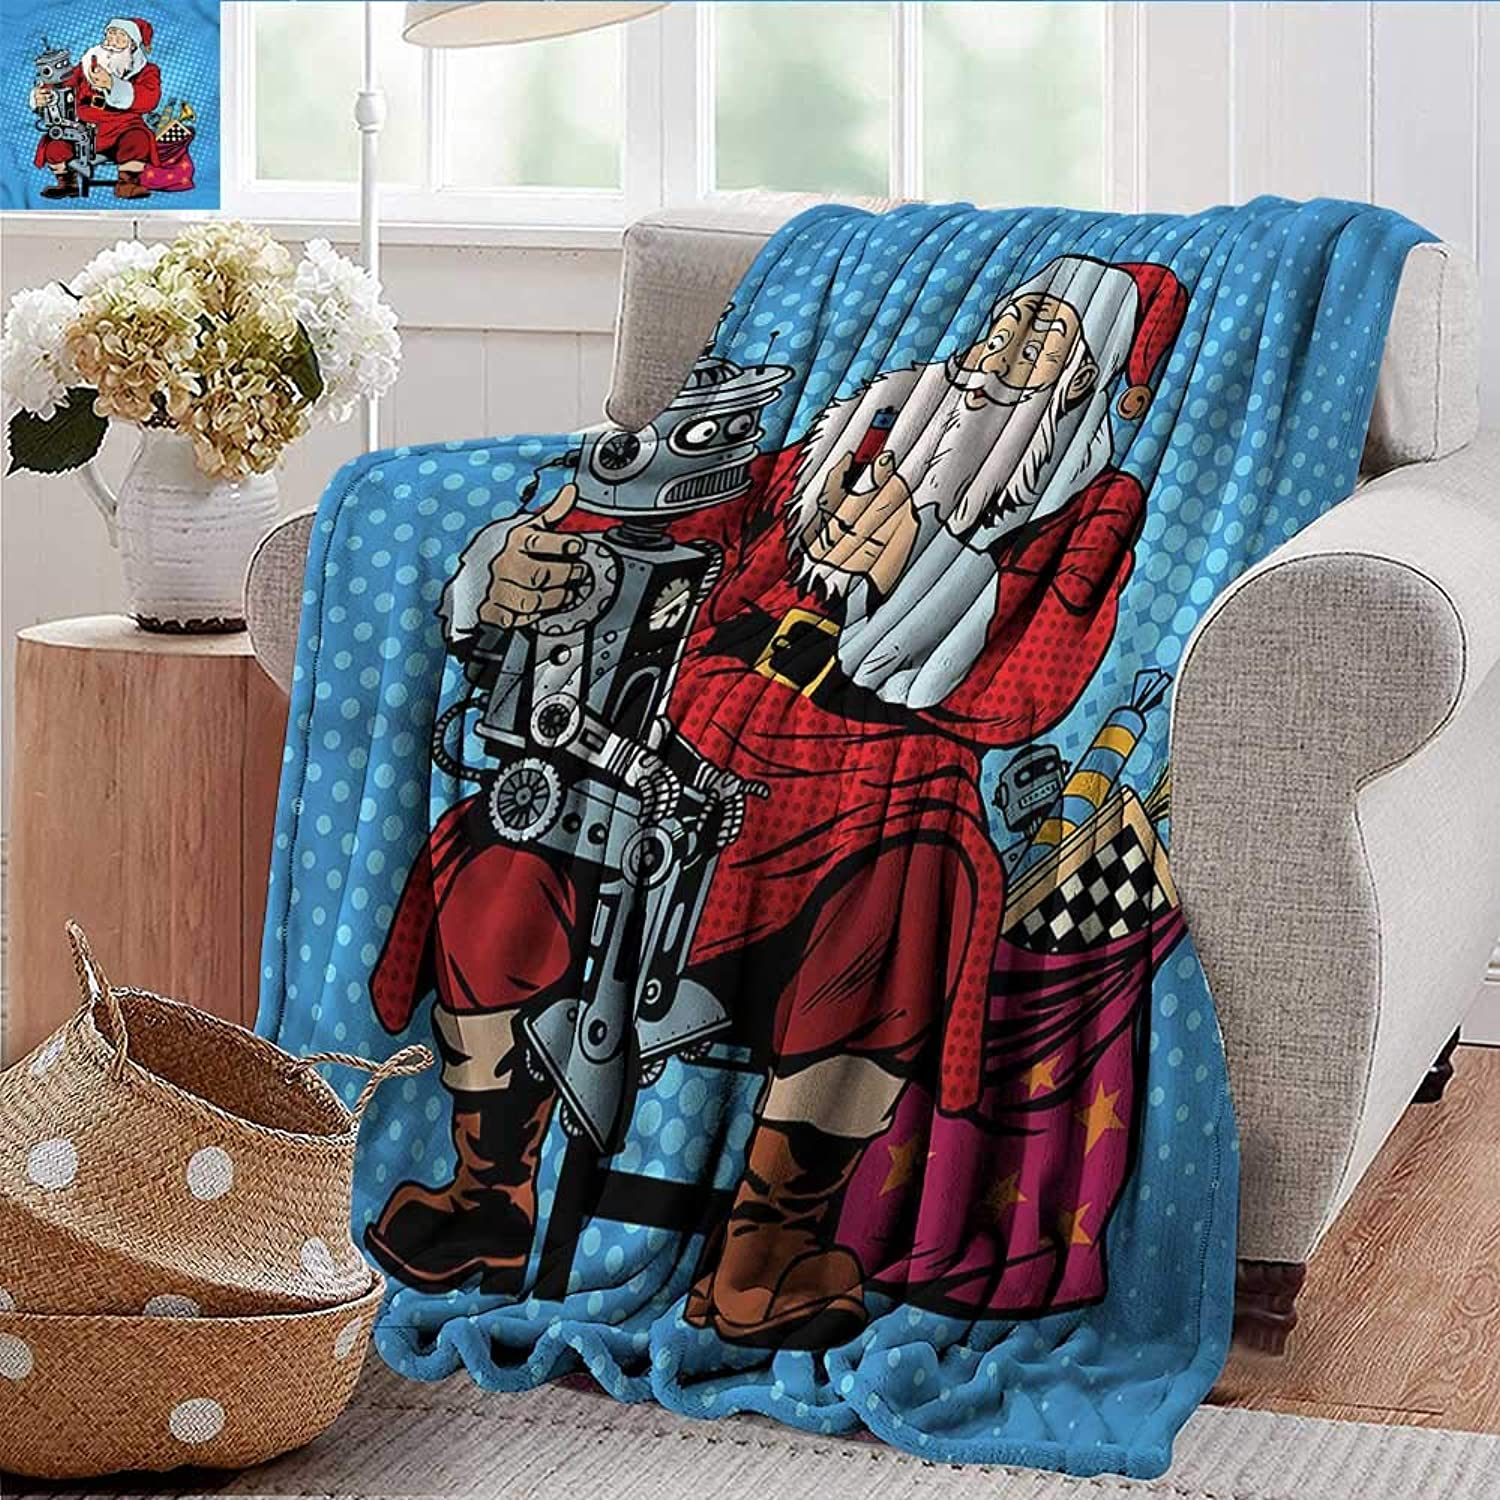 Xaviera Doherty Weighted Blanket for Kids Art,Santa Claus Giving a Gift Robot Soft Summer Cooling Lightweight Bed Blanket 50 x60